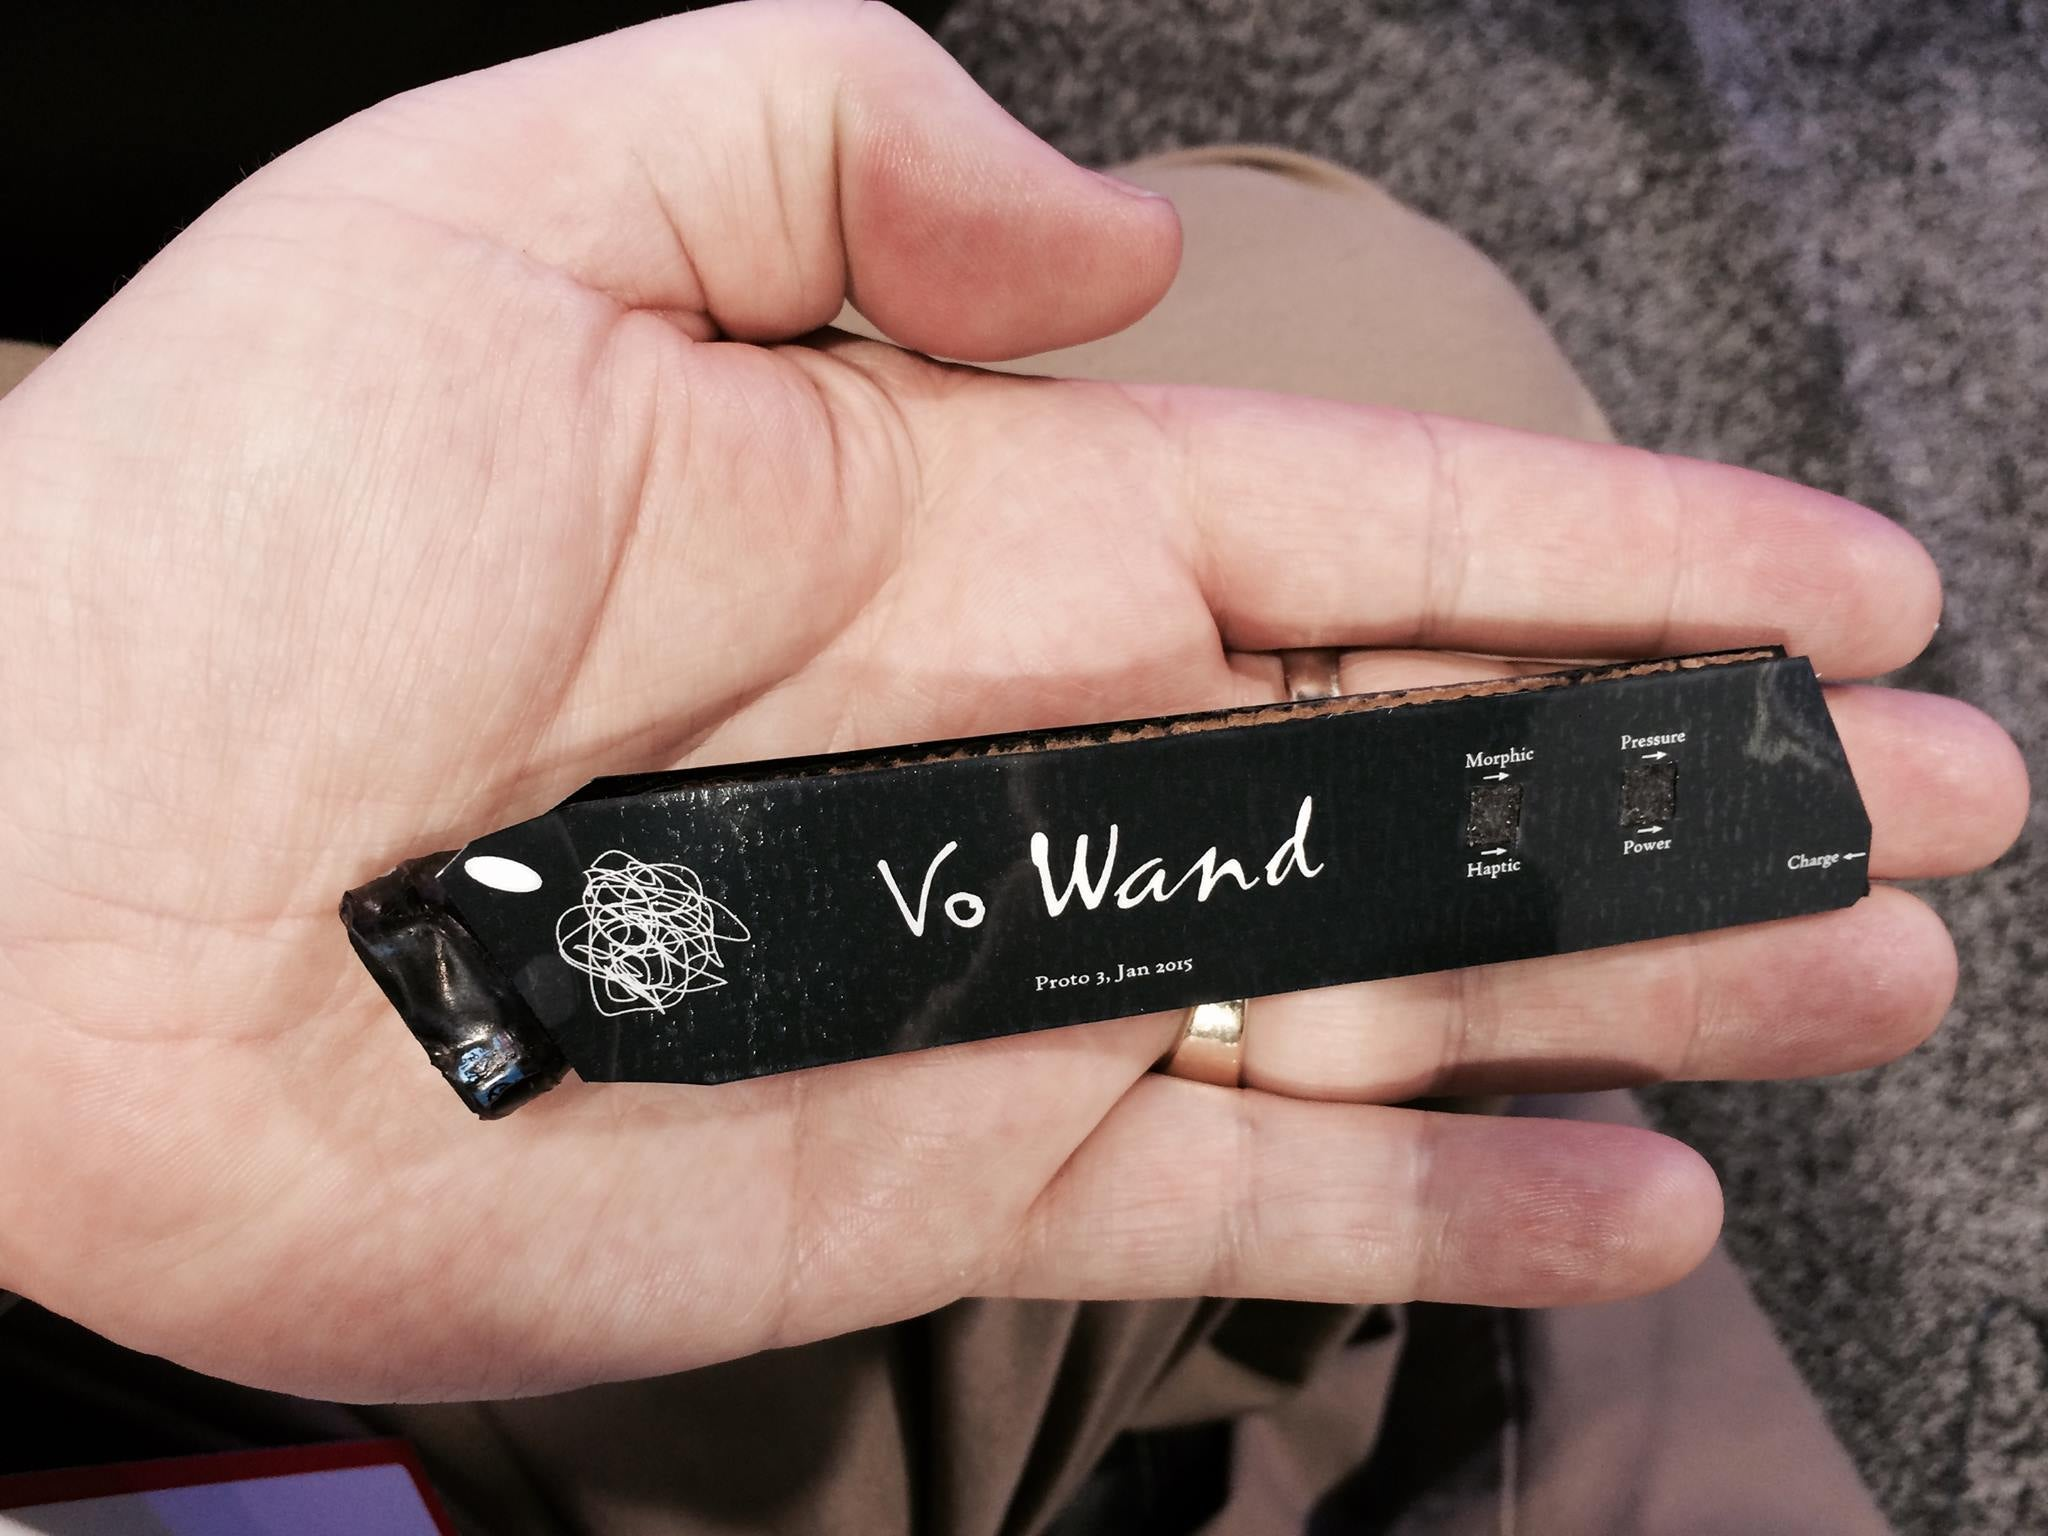 Paul Vo's Physics Defying Wand Makes Guitars Sound Entirely Different